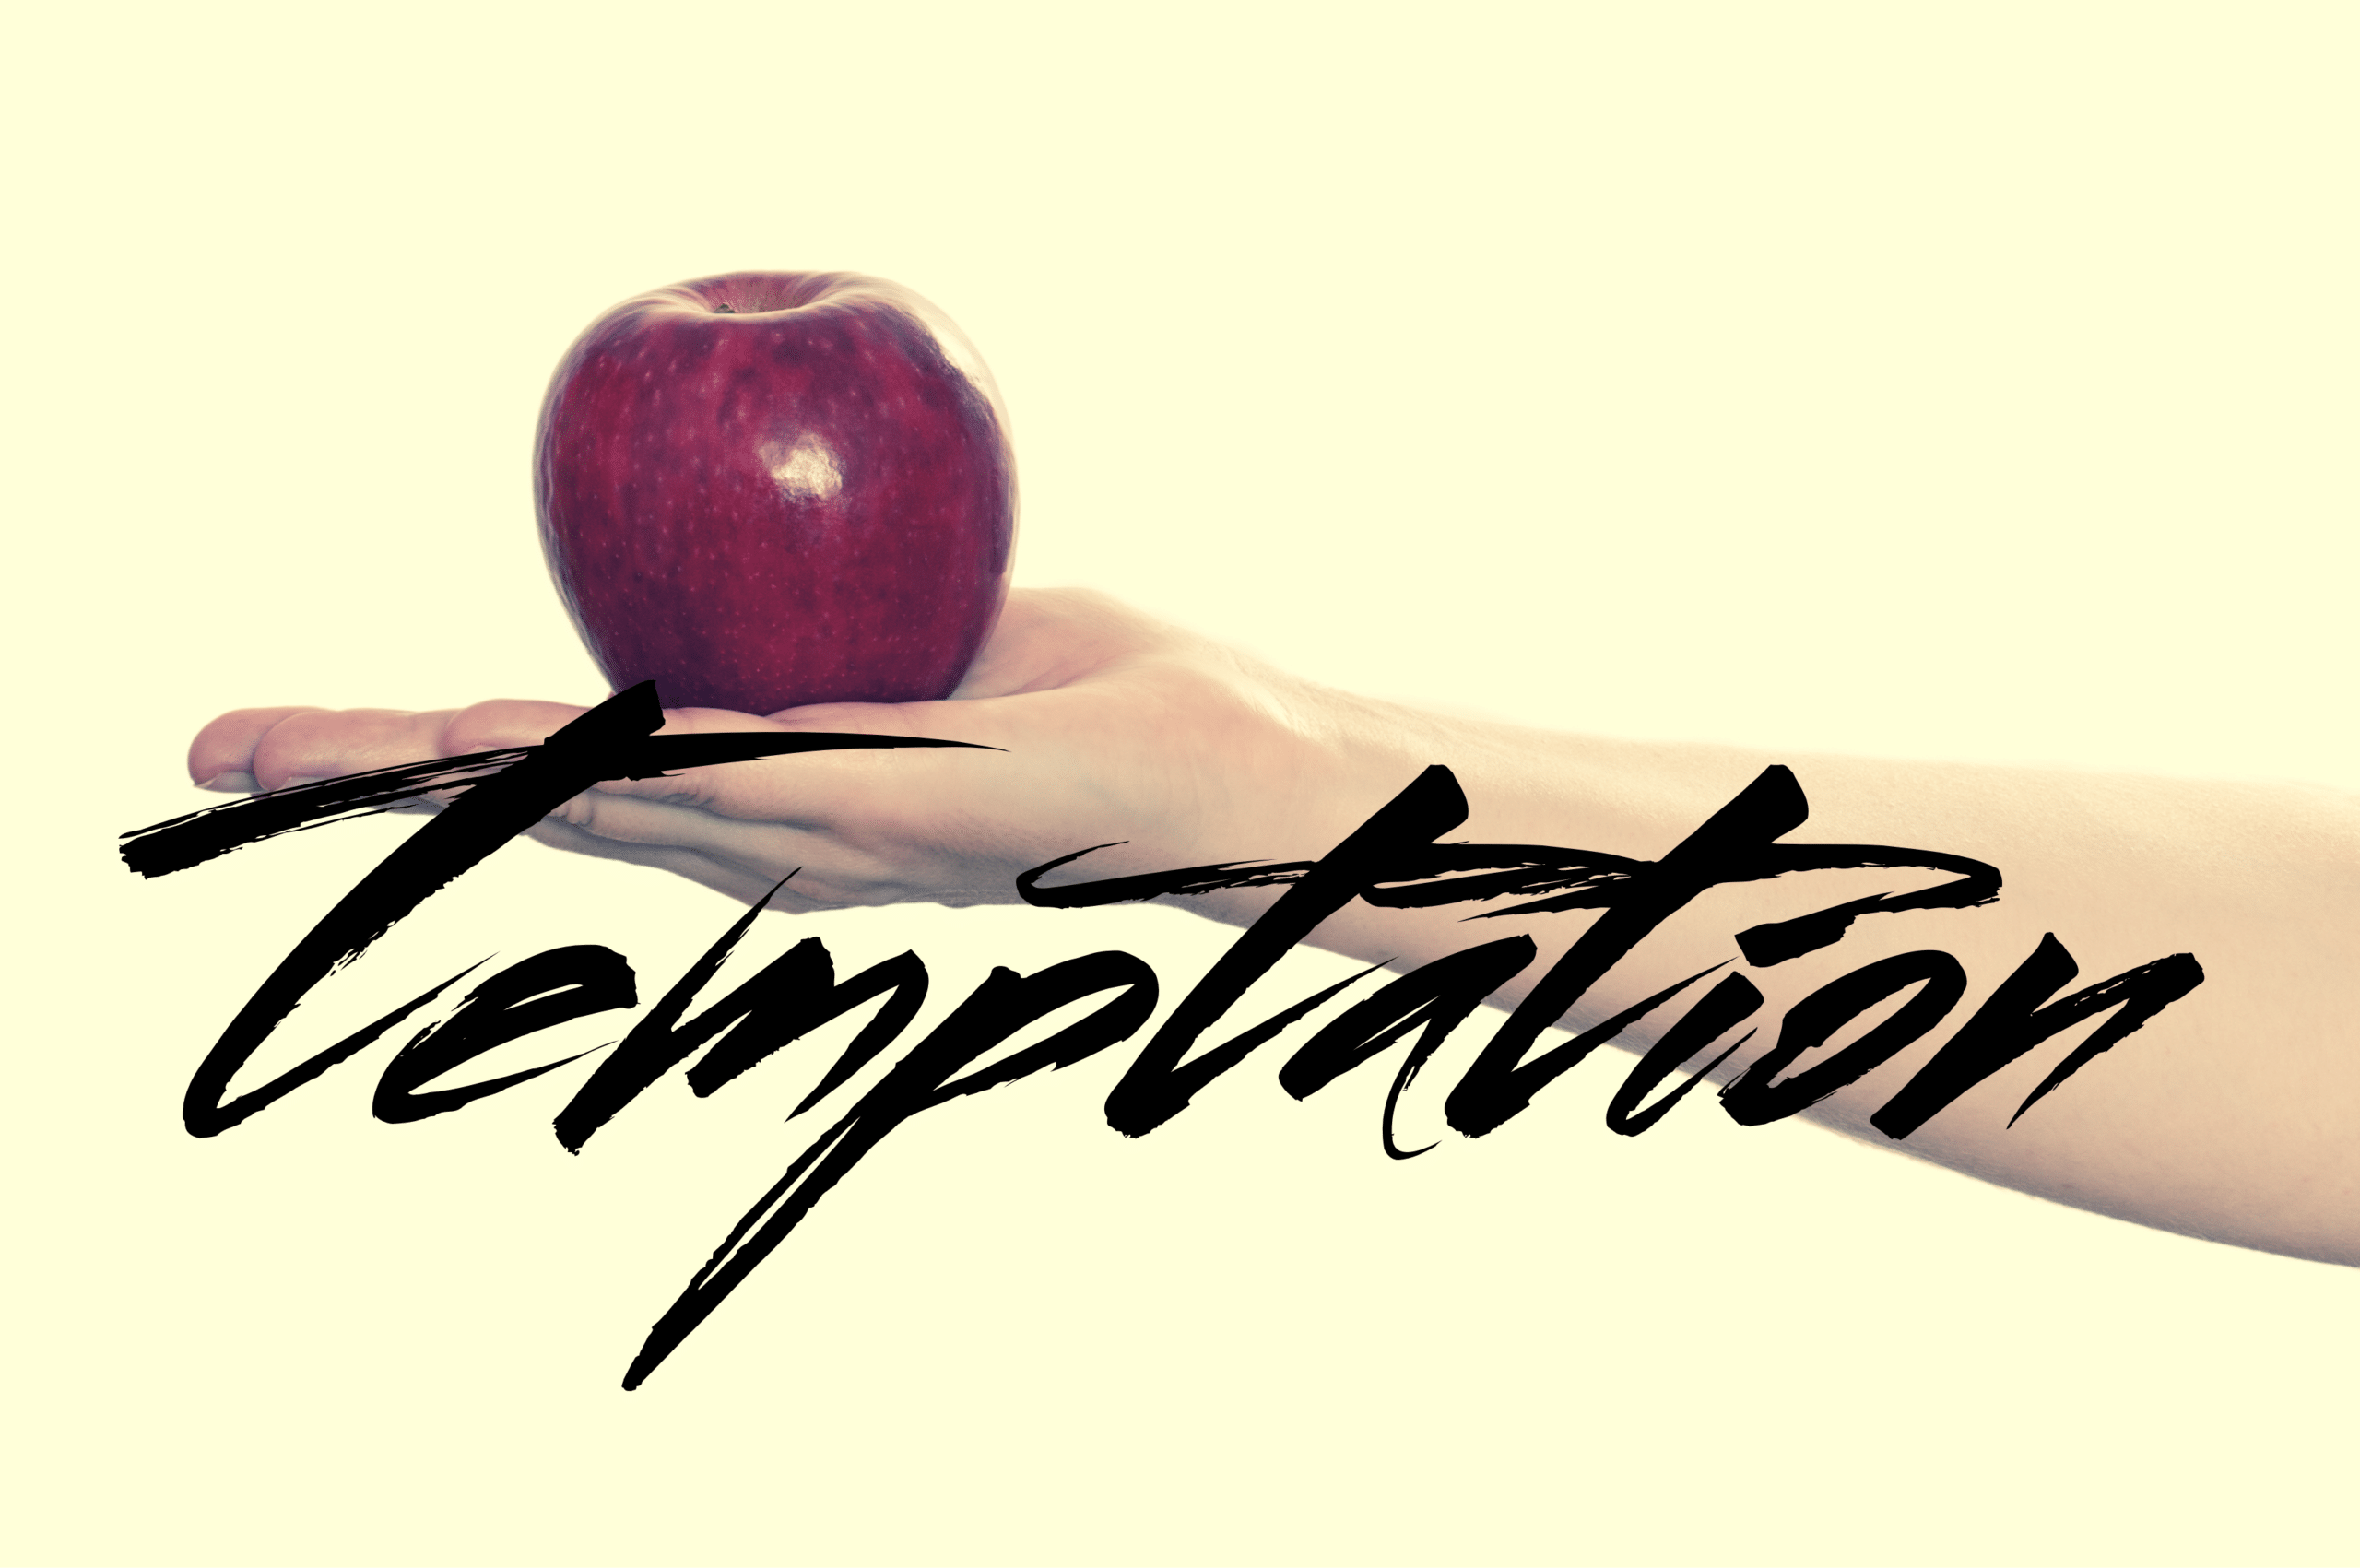 How Do I Deal With Enticing Temptations?